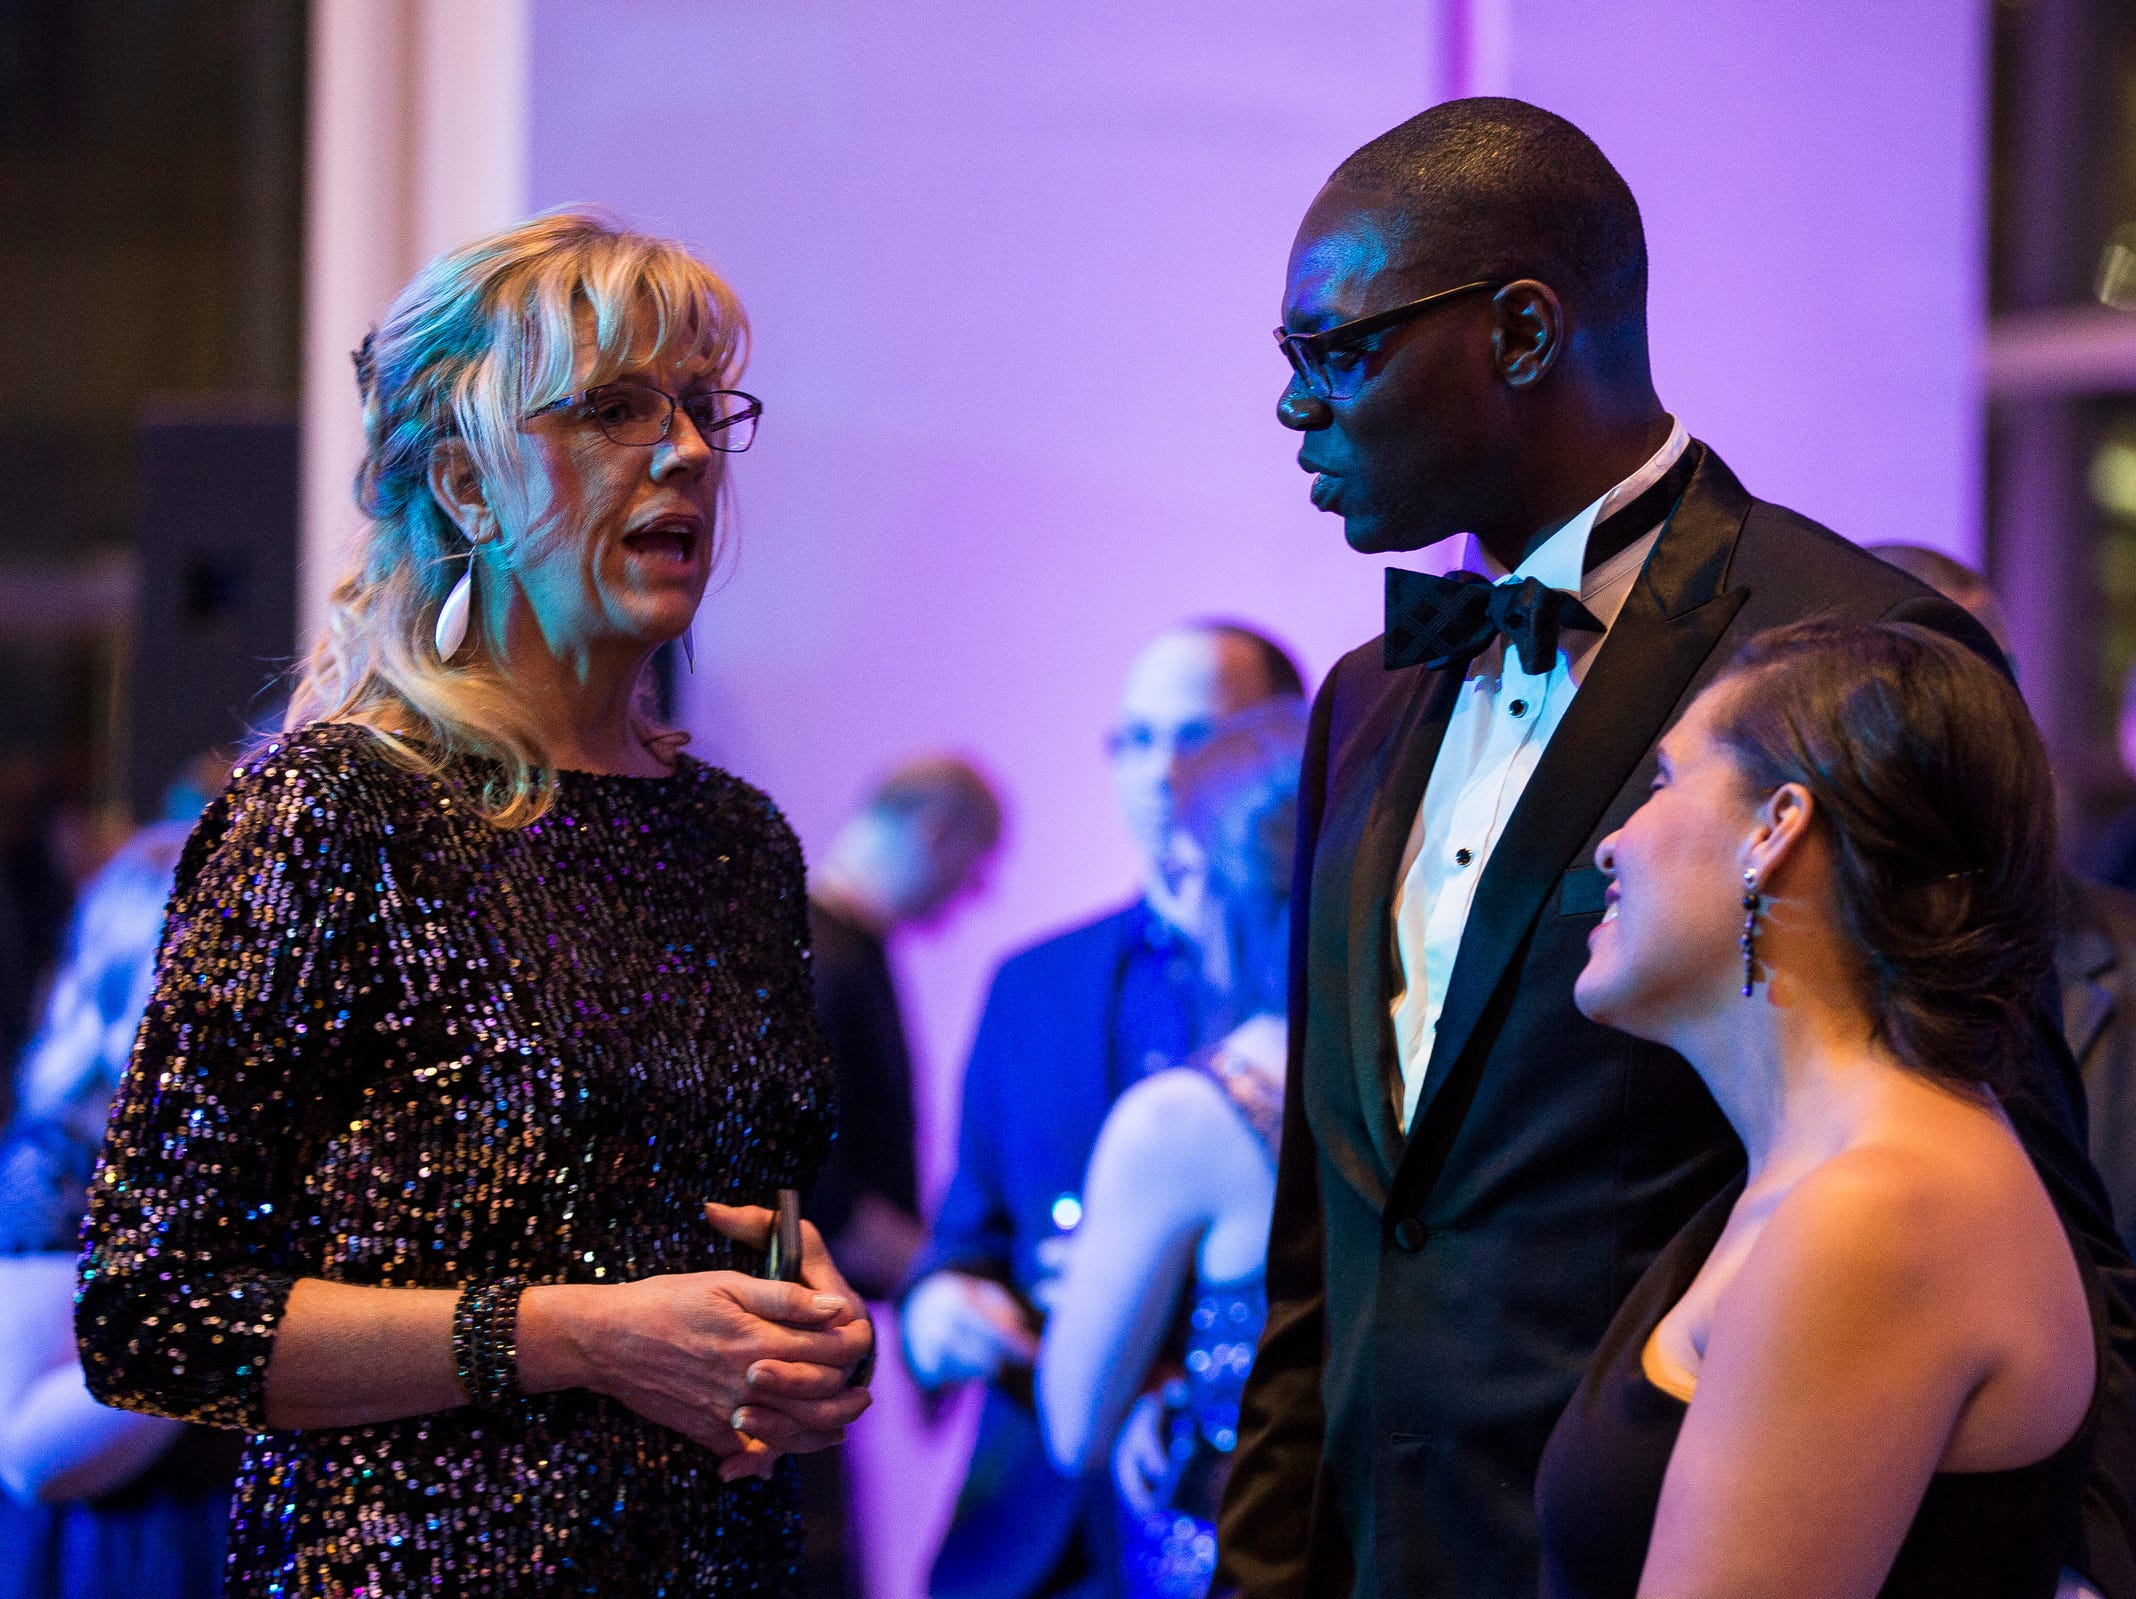 Heather Mallory-May, left, talks to lieutenant governor Garlin Gilchrist II and his wife Ellen Gilchrist during the inaugural ball at Cobo Center in Detroit on Tuesday, Jan. 1, 2019.